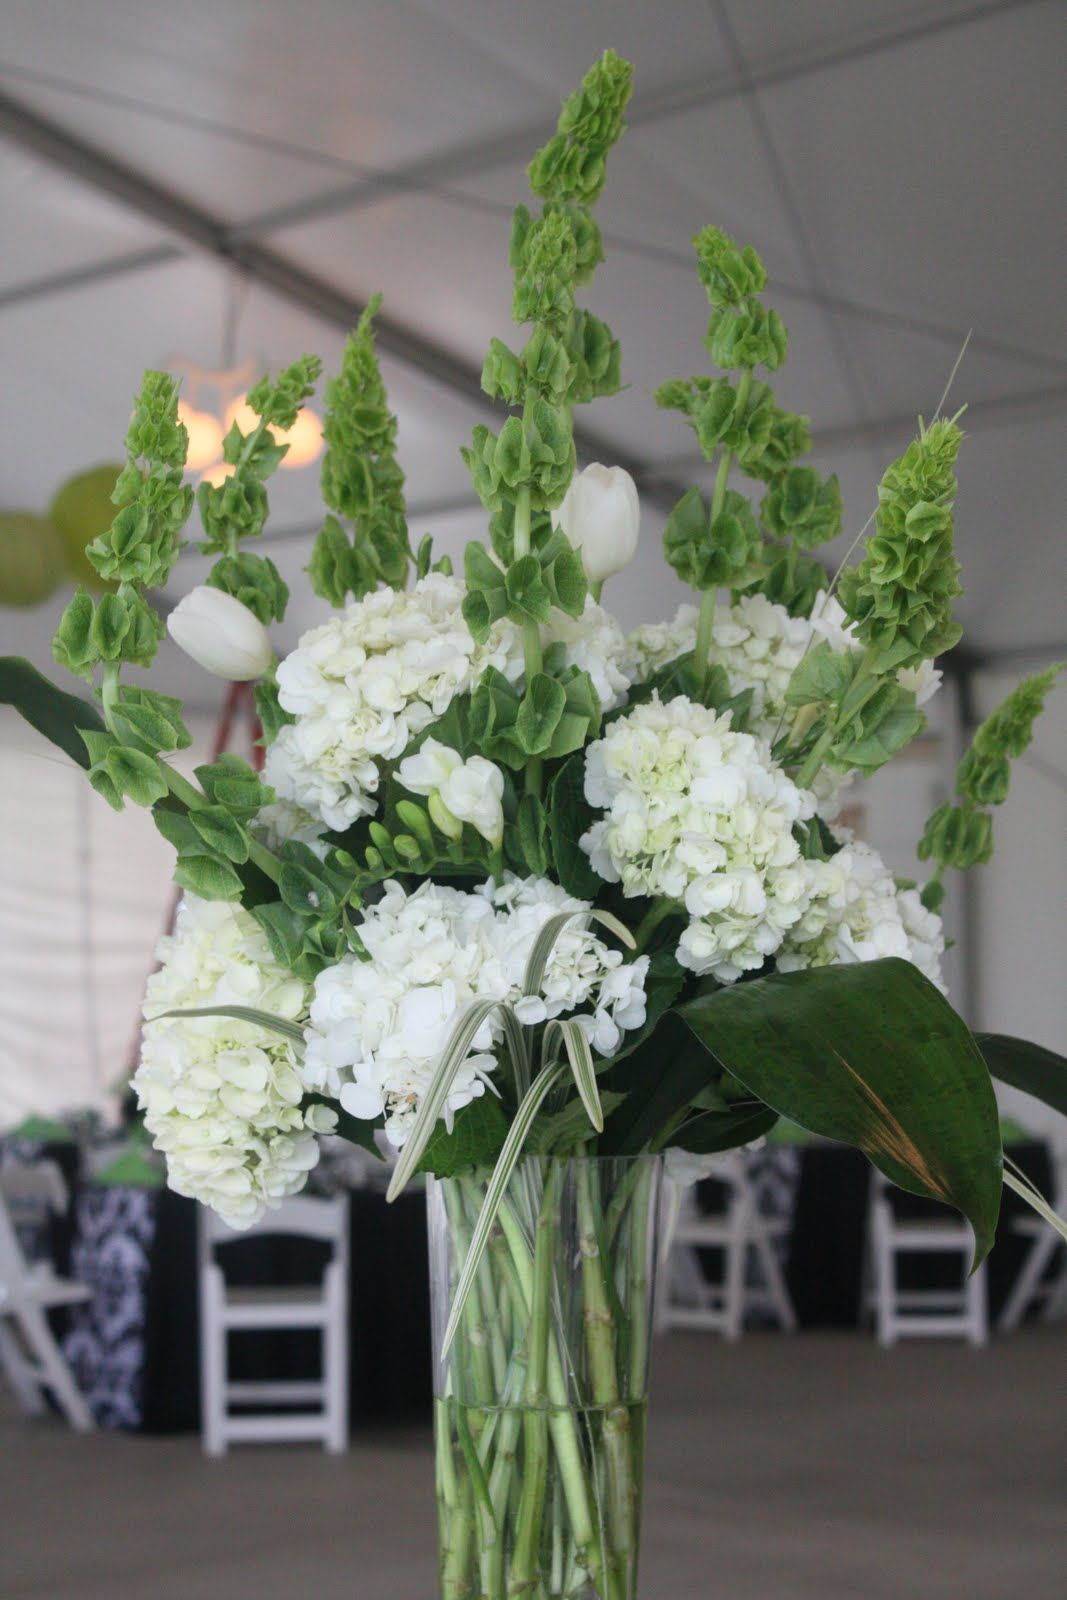 Bells Of Ireland Hydrangea Freesia Tulips Poms And Varigated Lily Grass And Asp Hydrangea Centerpiece Hydrangea Centerpiece Diy Wedding Floral Centerpieces